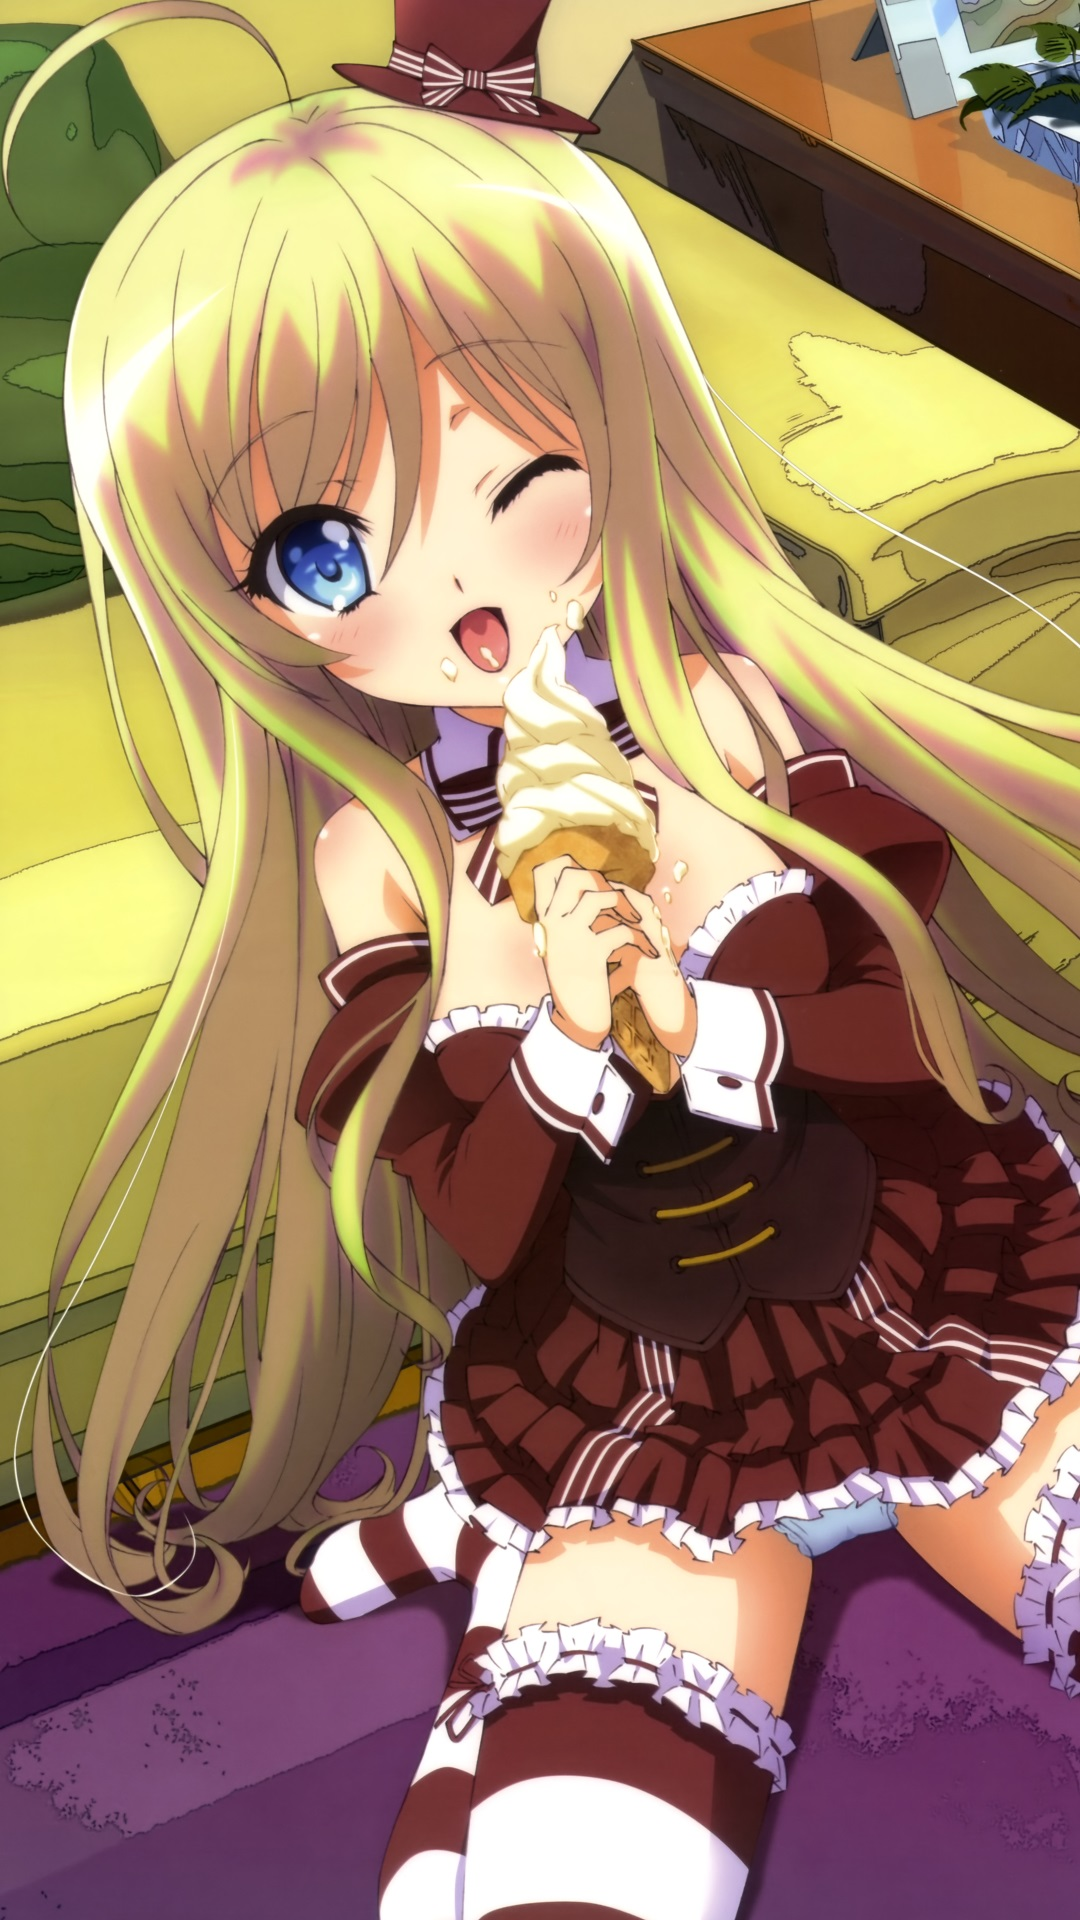 noucome chocolat lenovo k900 wallpaper 1080 u00d71920  u2013 kawaii